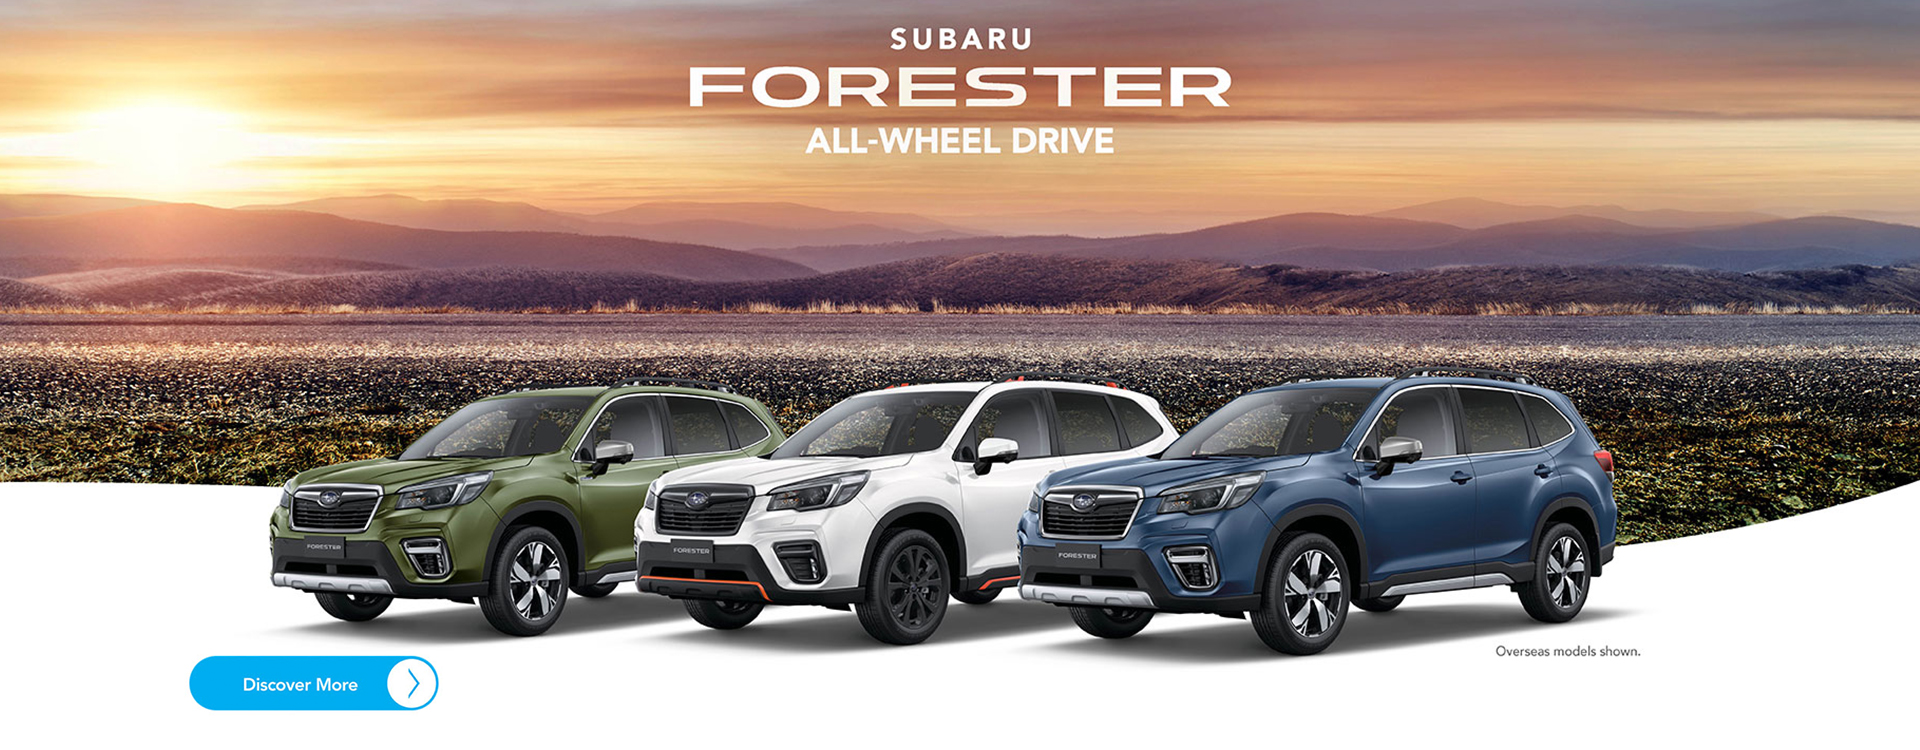 New Subaru Forester, including Hybrid e-Boxer, now available at Subaru Tamworth. Test Drive Today!